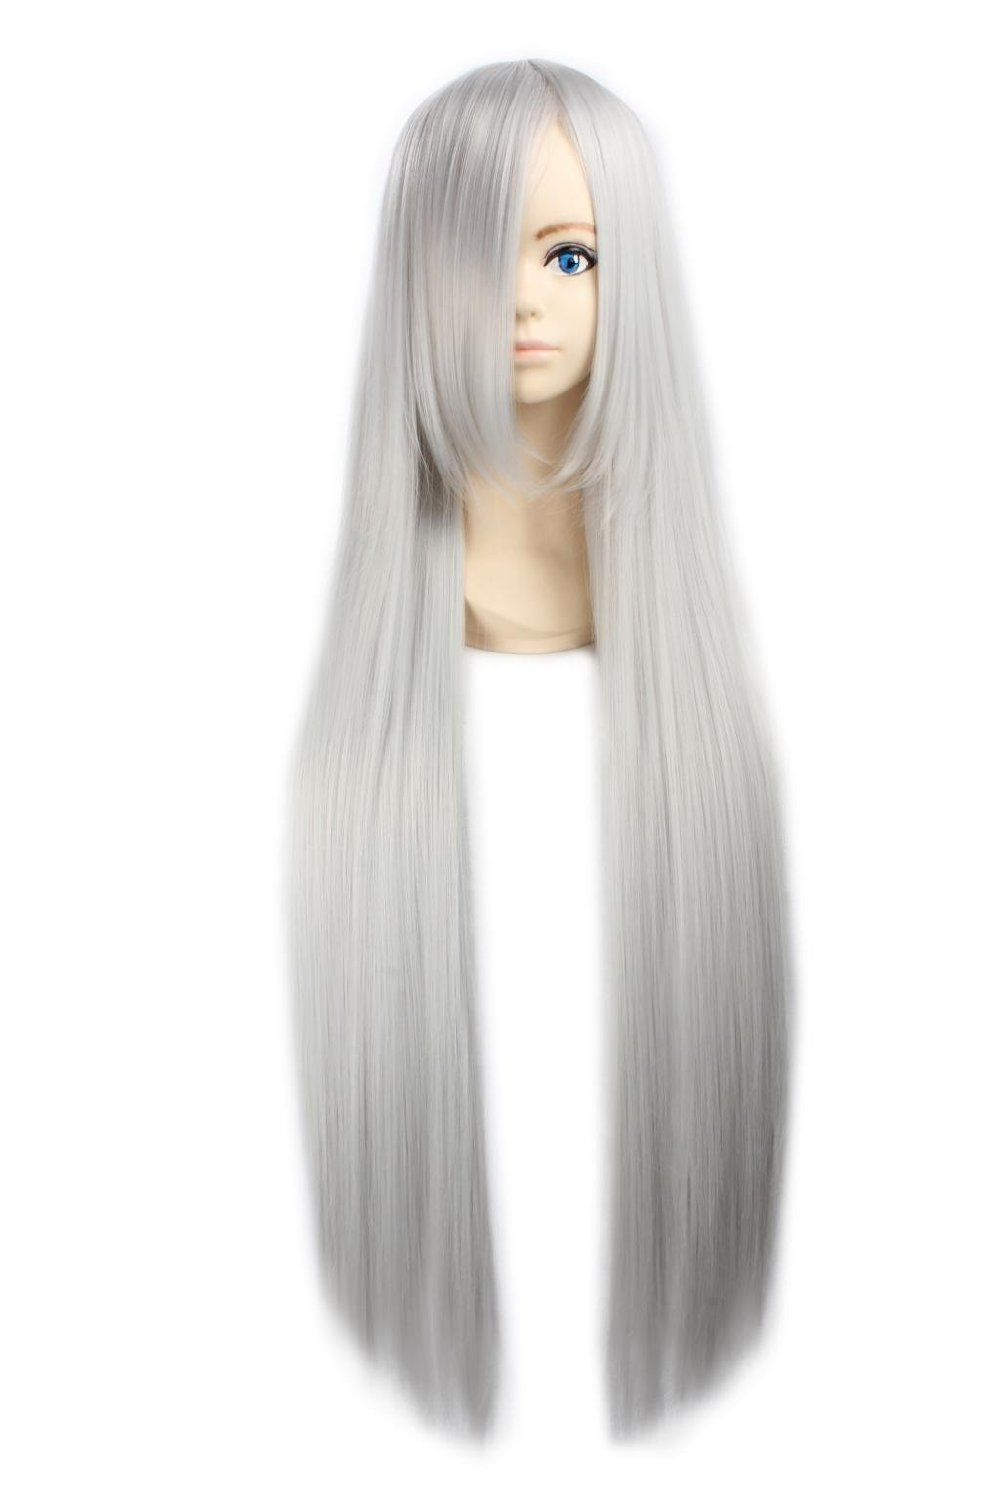 2020 New Gray Hair Wigs For African American Women Cheap Human Hair Wigs For African American Mens Wigs Near Me Eyebrows Turning Grey Big Curly Wigs Fancy Wigs